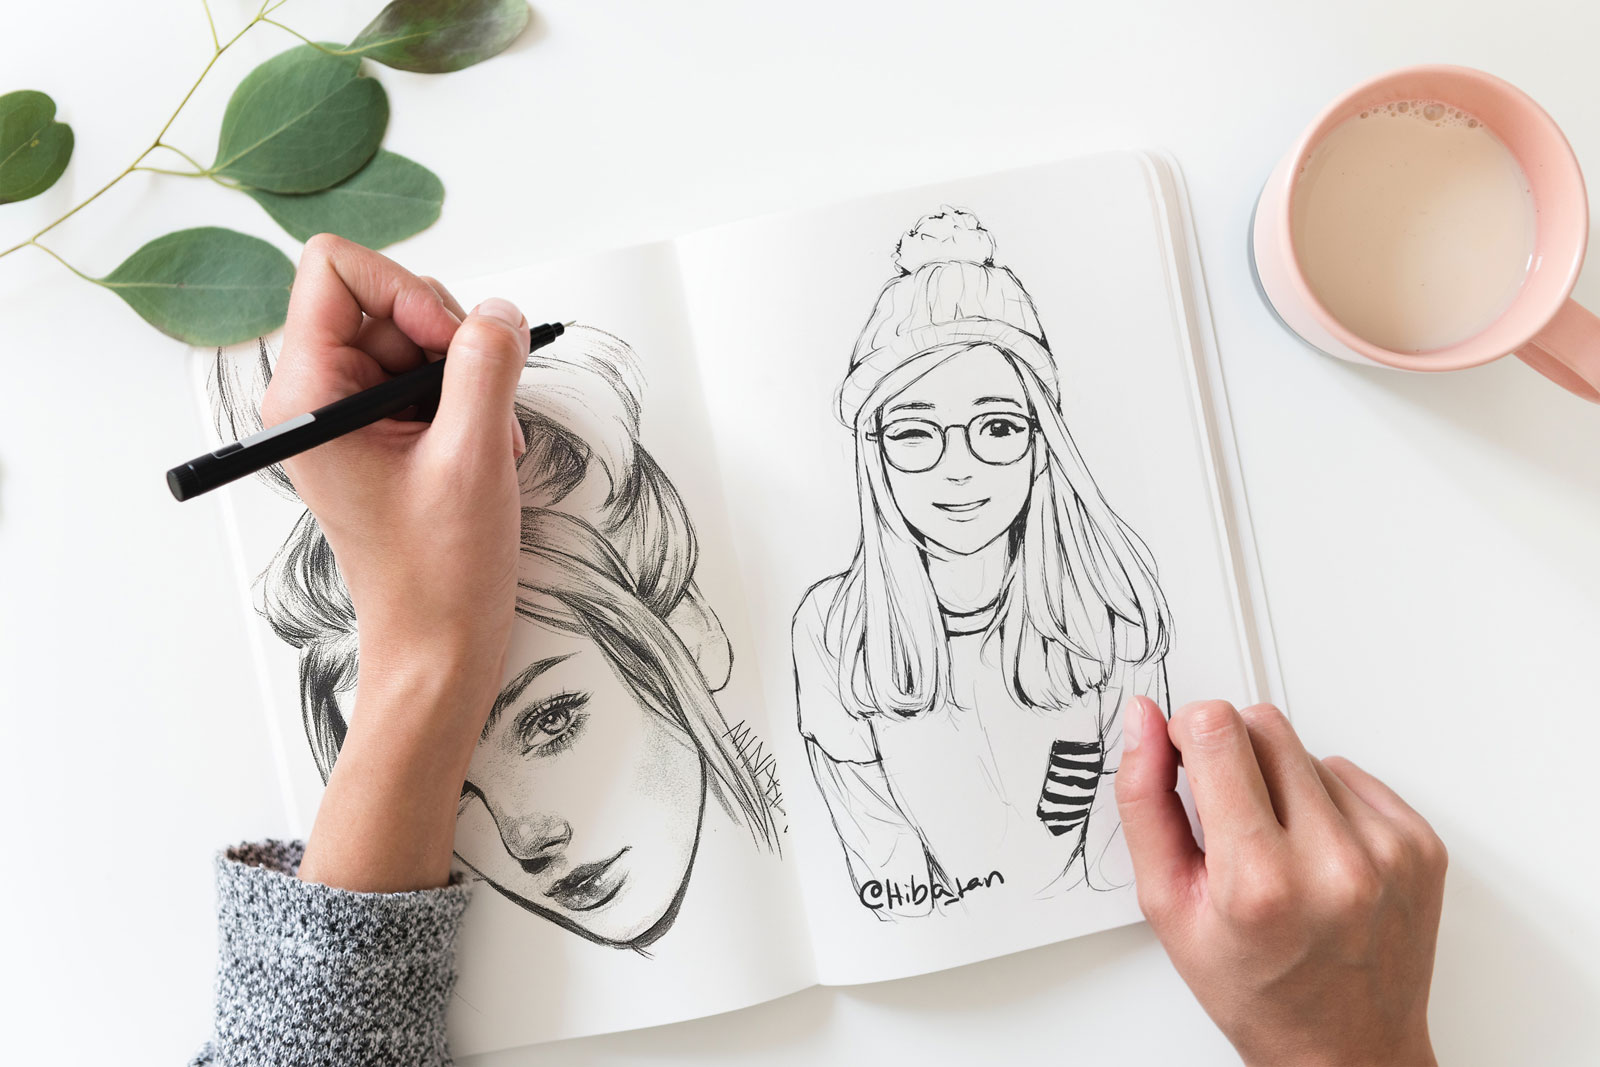 Free-Sketch-Book-Mockup-PSD-File